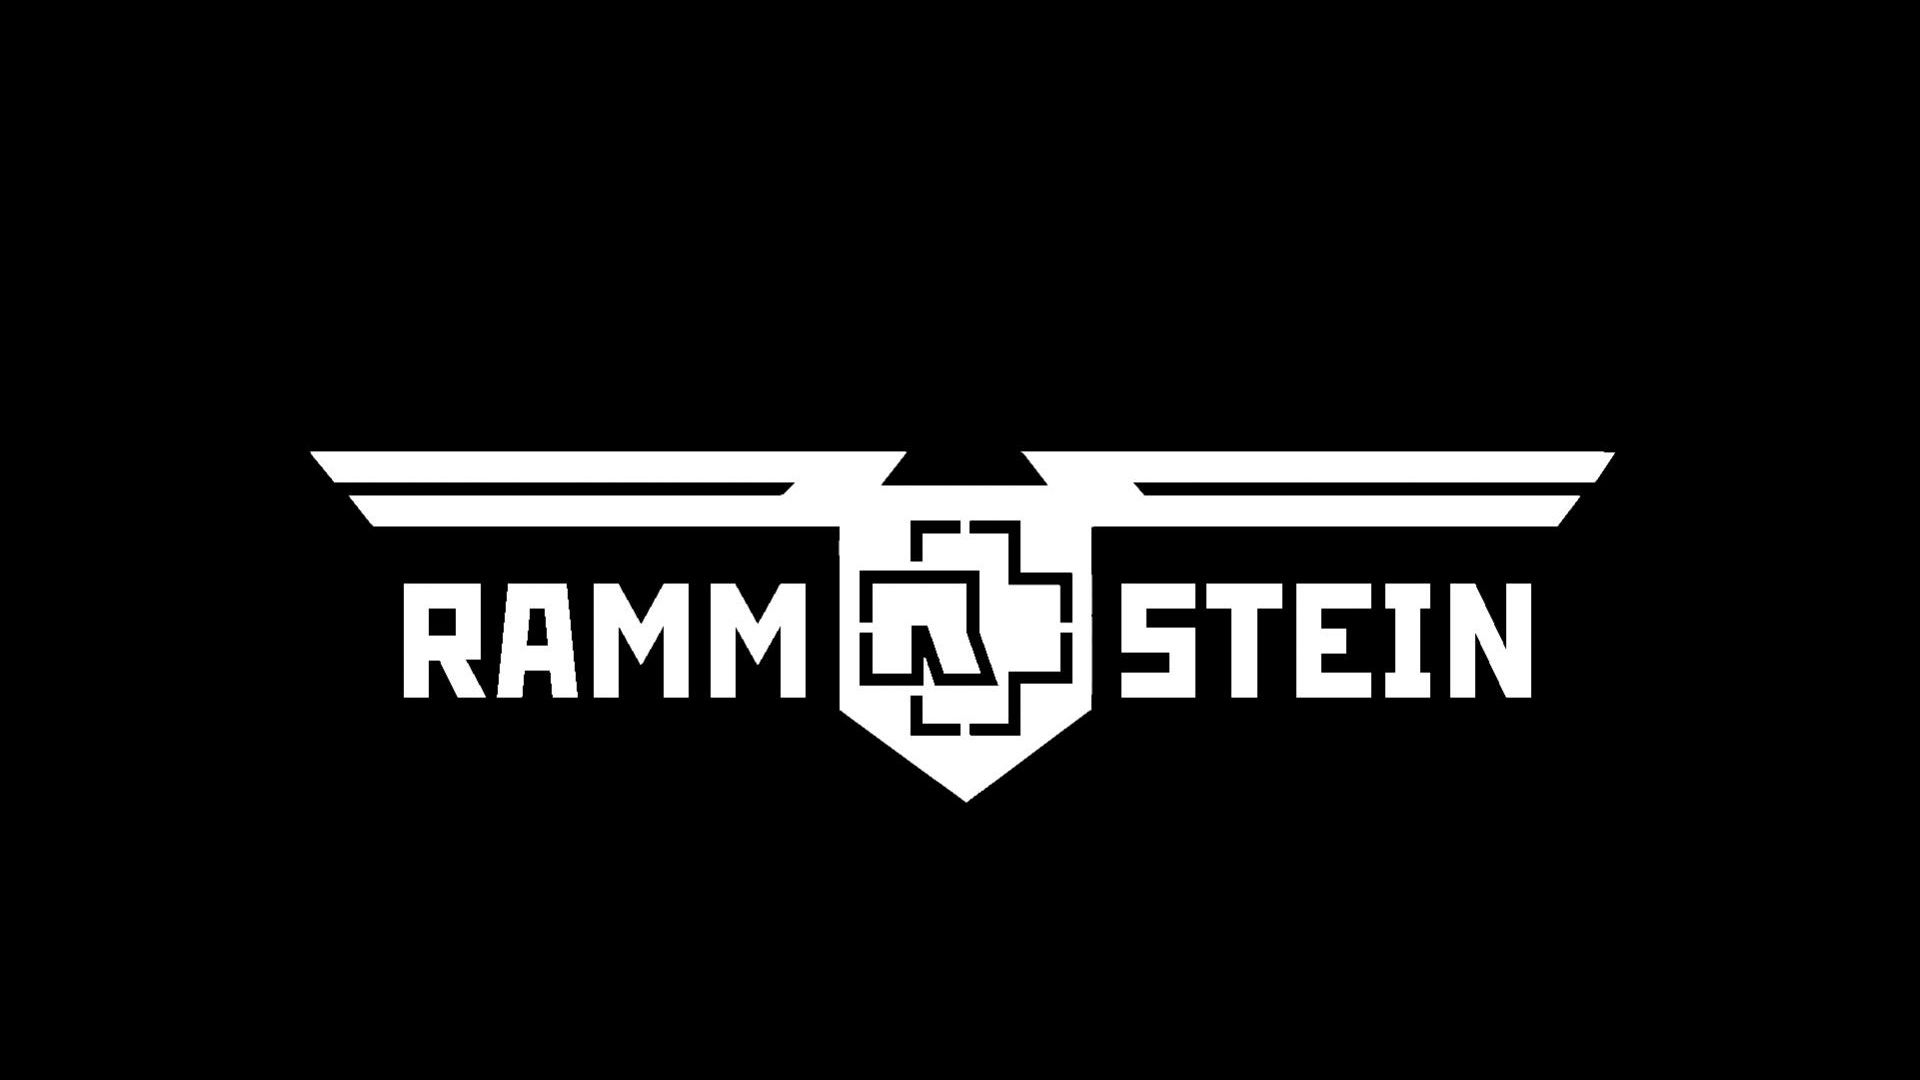 Download Wallpaper 1920x1080 Rammstein Sign Letters Font Background Full Hd 1080p Hd Background Rammstein Logos Band Logos